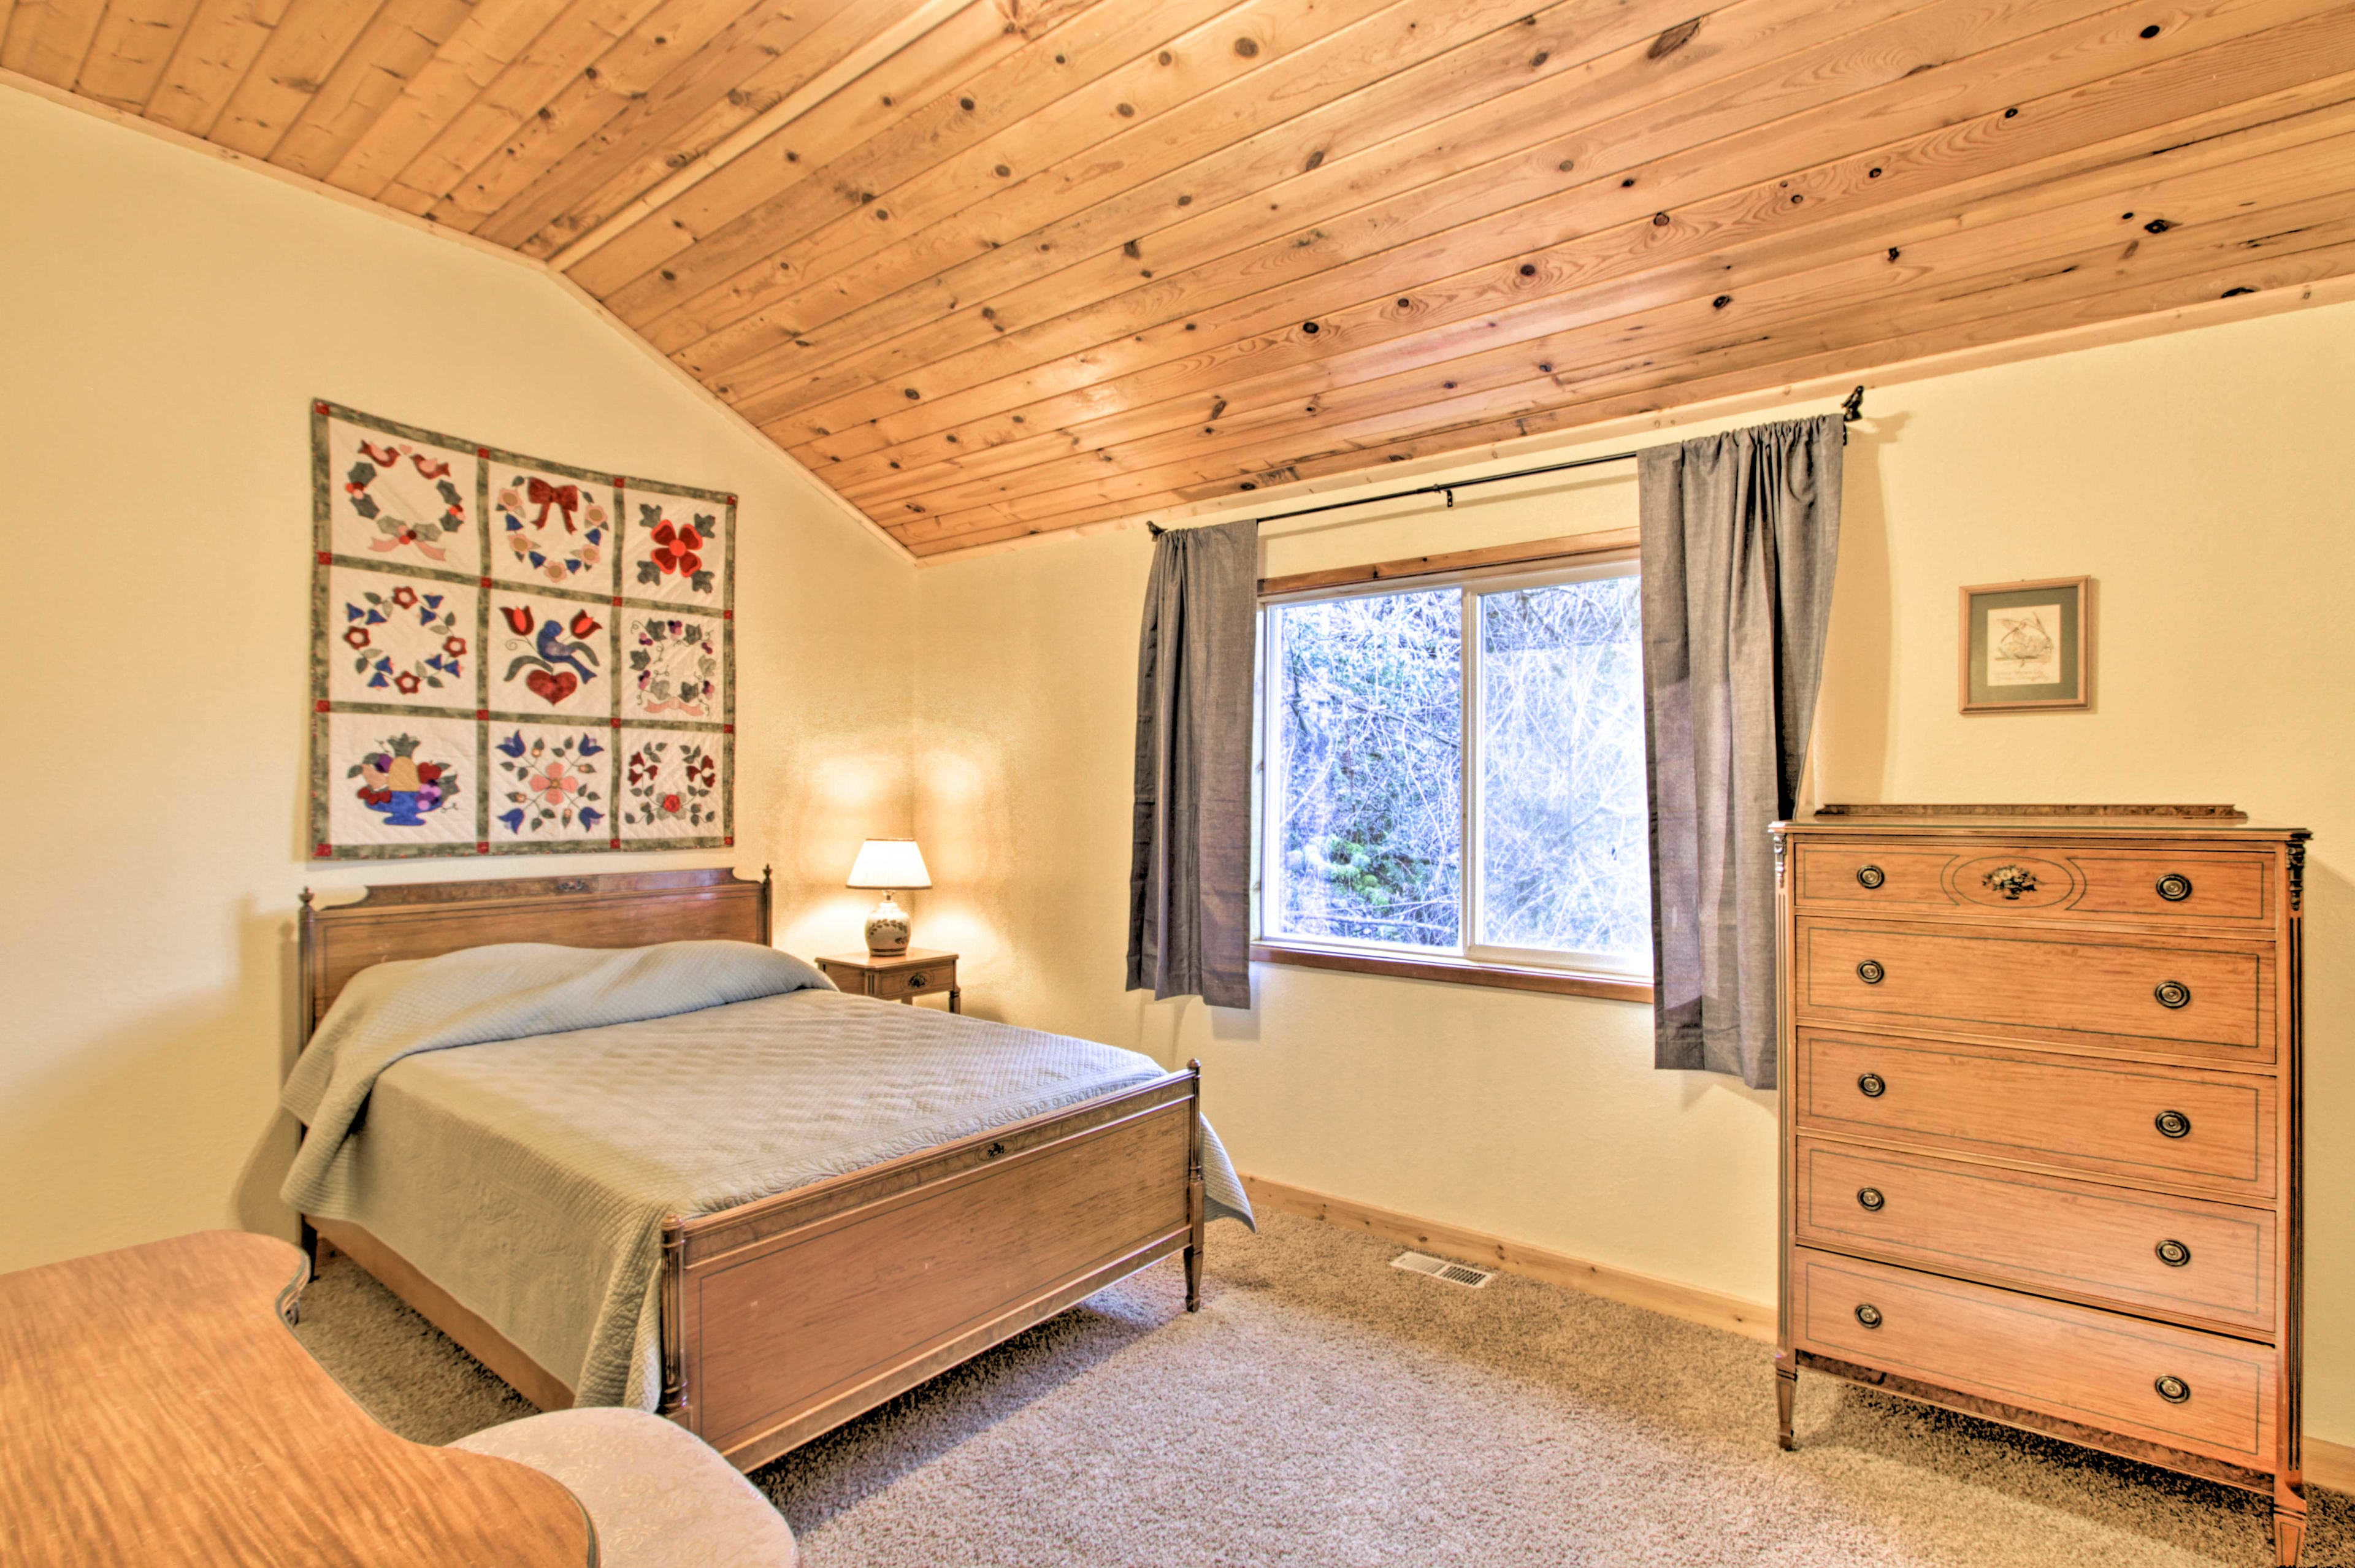 This second bedroom features a full bed and wood-paneled ceilings.